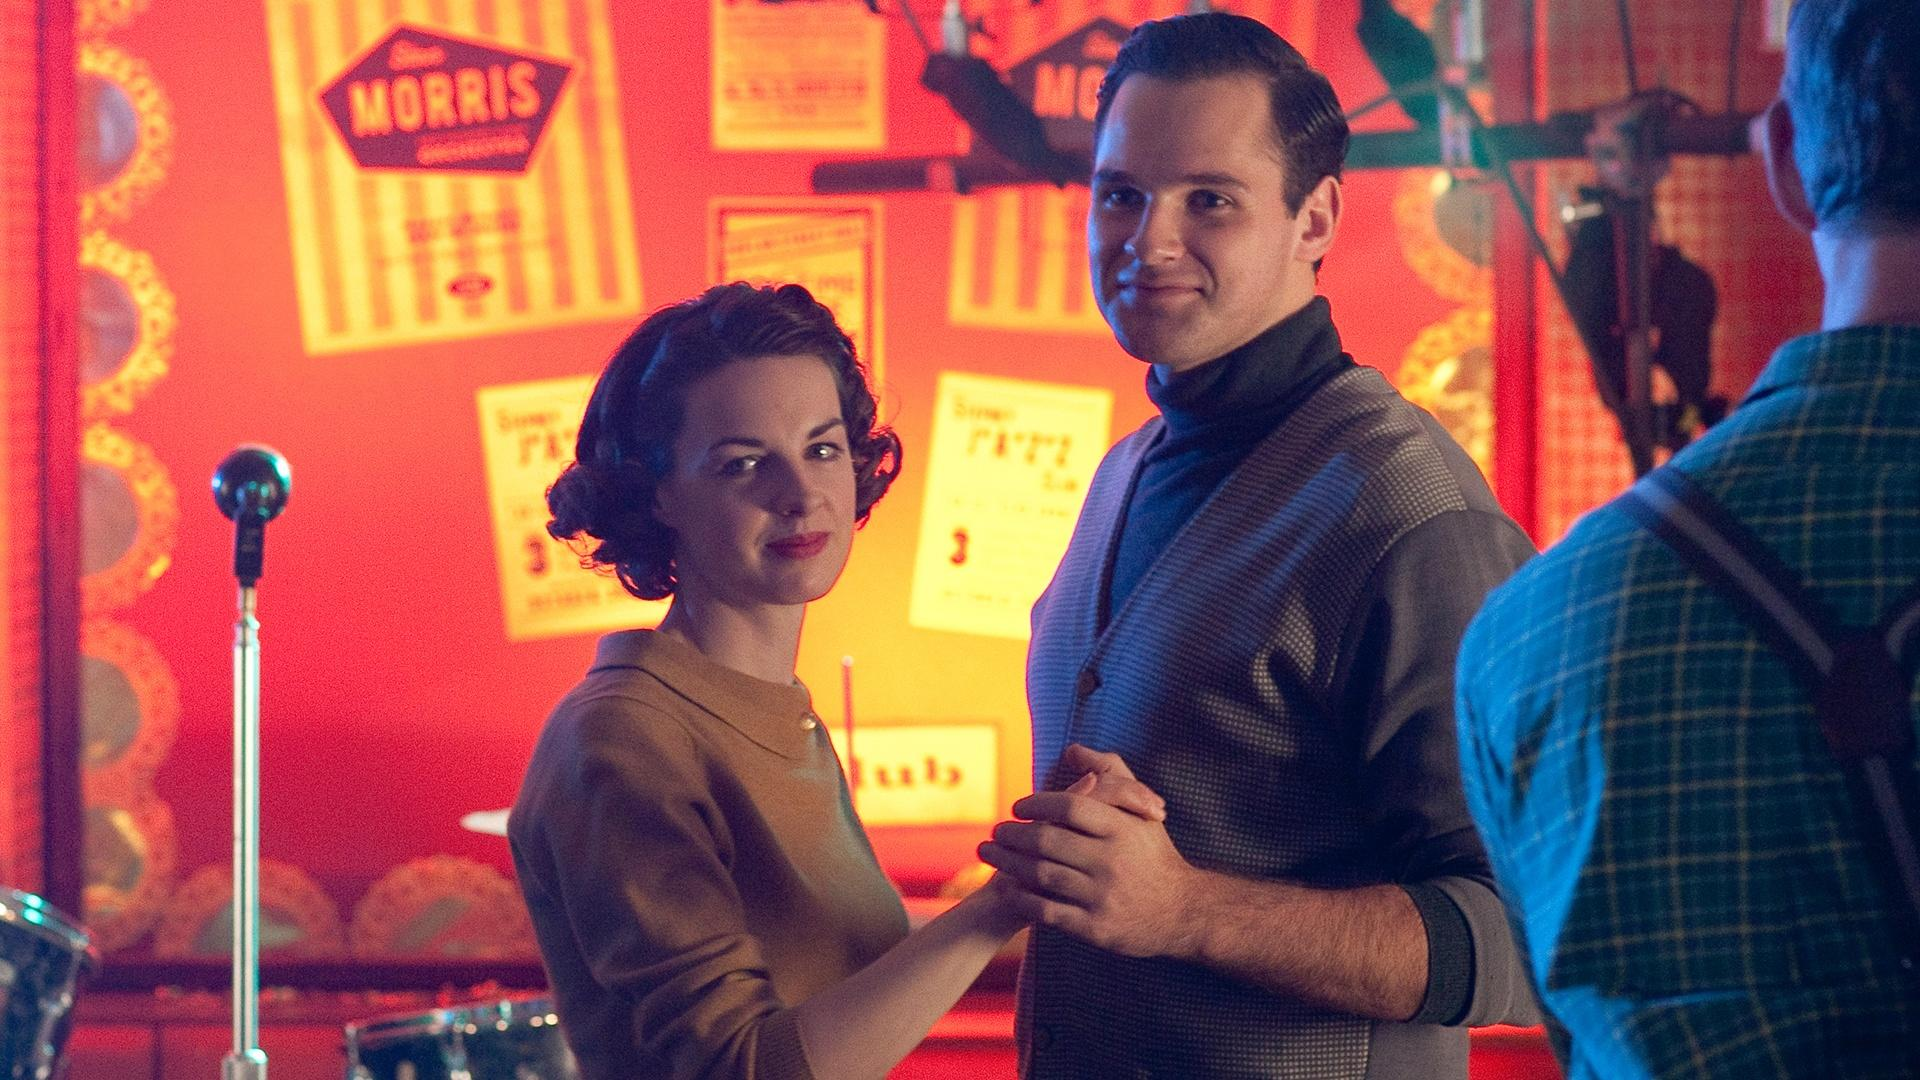 Call The Midwife - Scenes from Episode 8 - Twin Cities PBS Philip Worth Call The Midwife